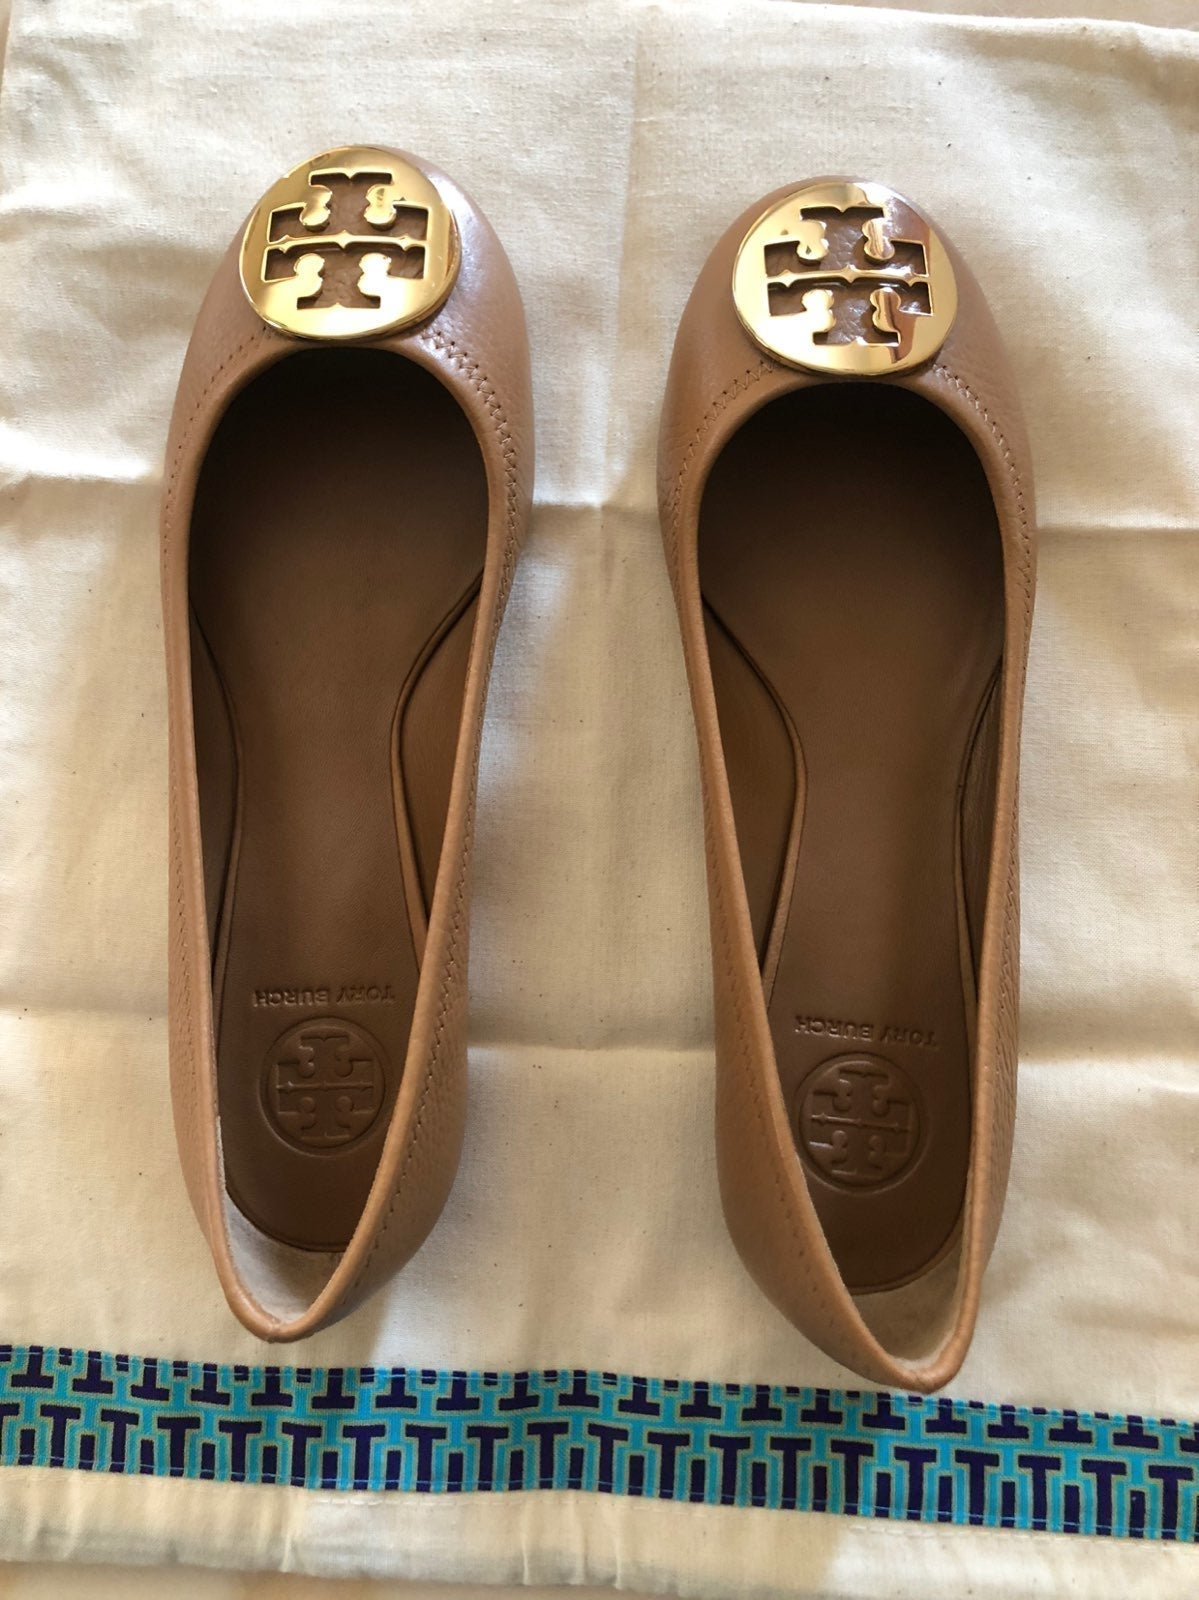 Tory Burch Leather Ballet -  New - 7.5